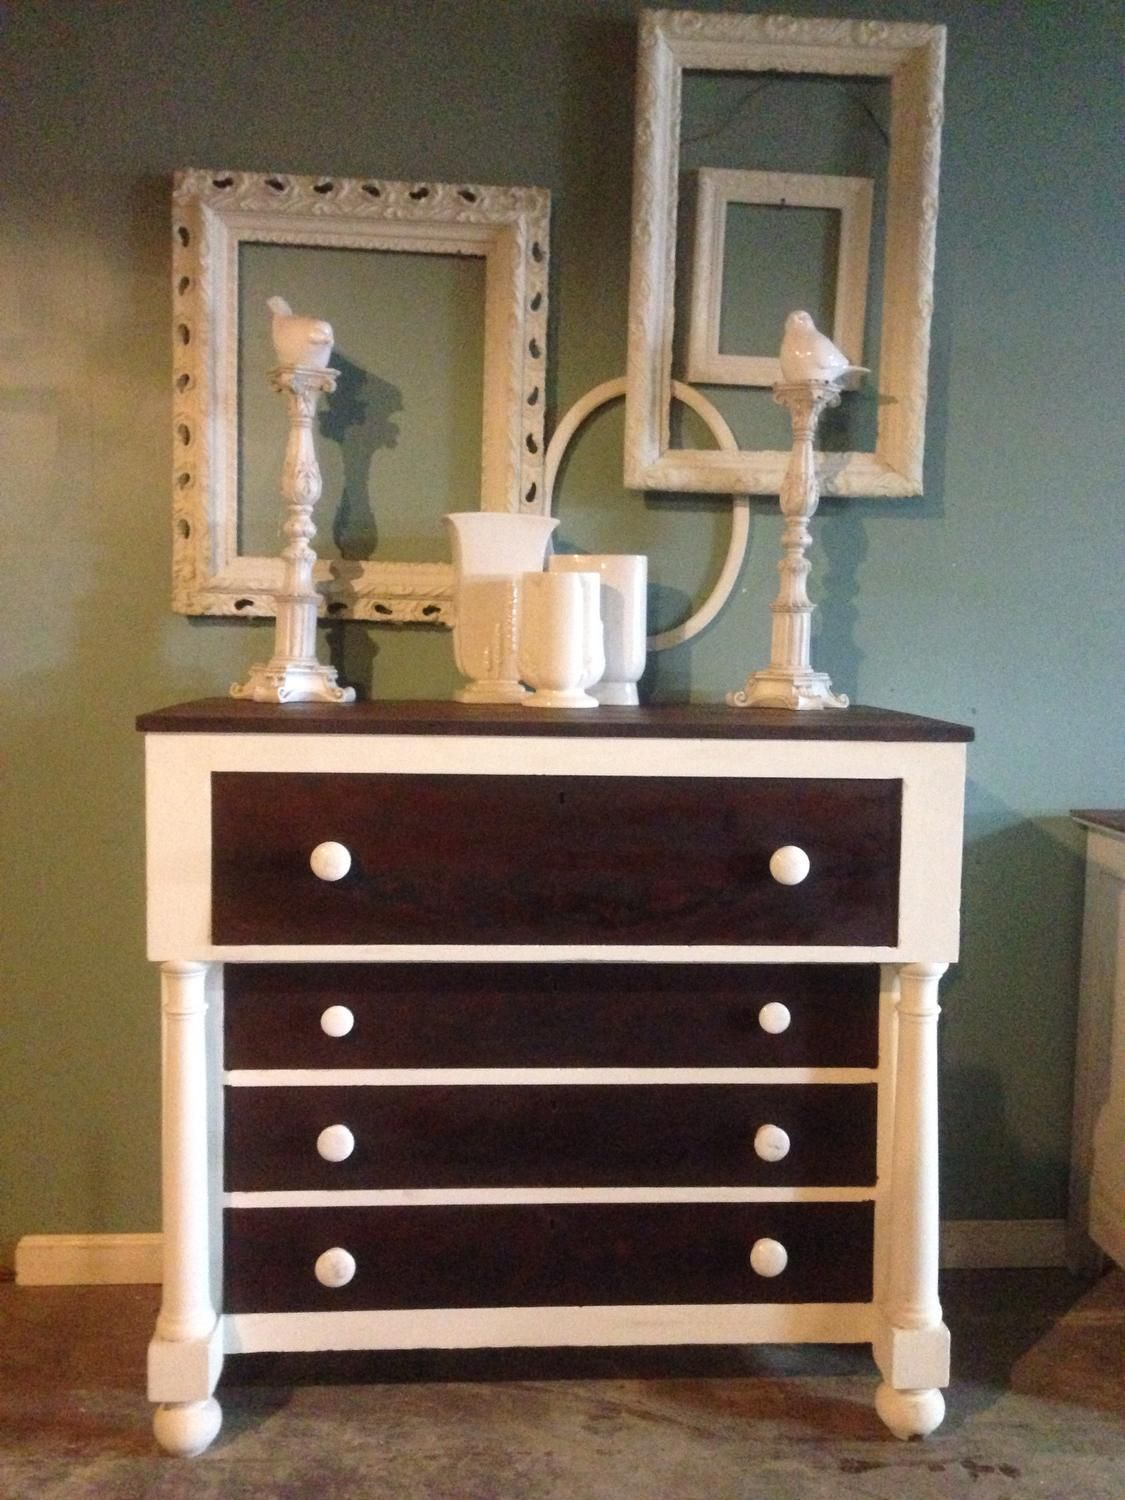 for sale reduced refinished antique dresser refinished four drawer antique dresser chest of drawers rich wood stained drawers and top